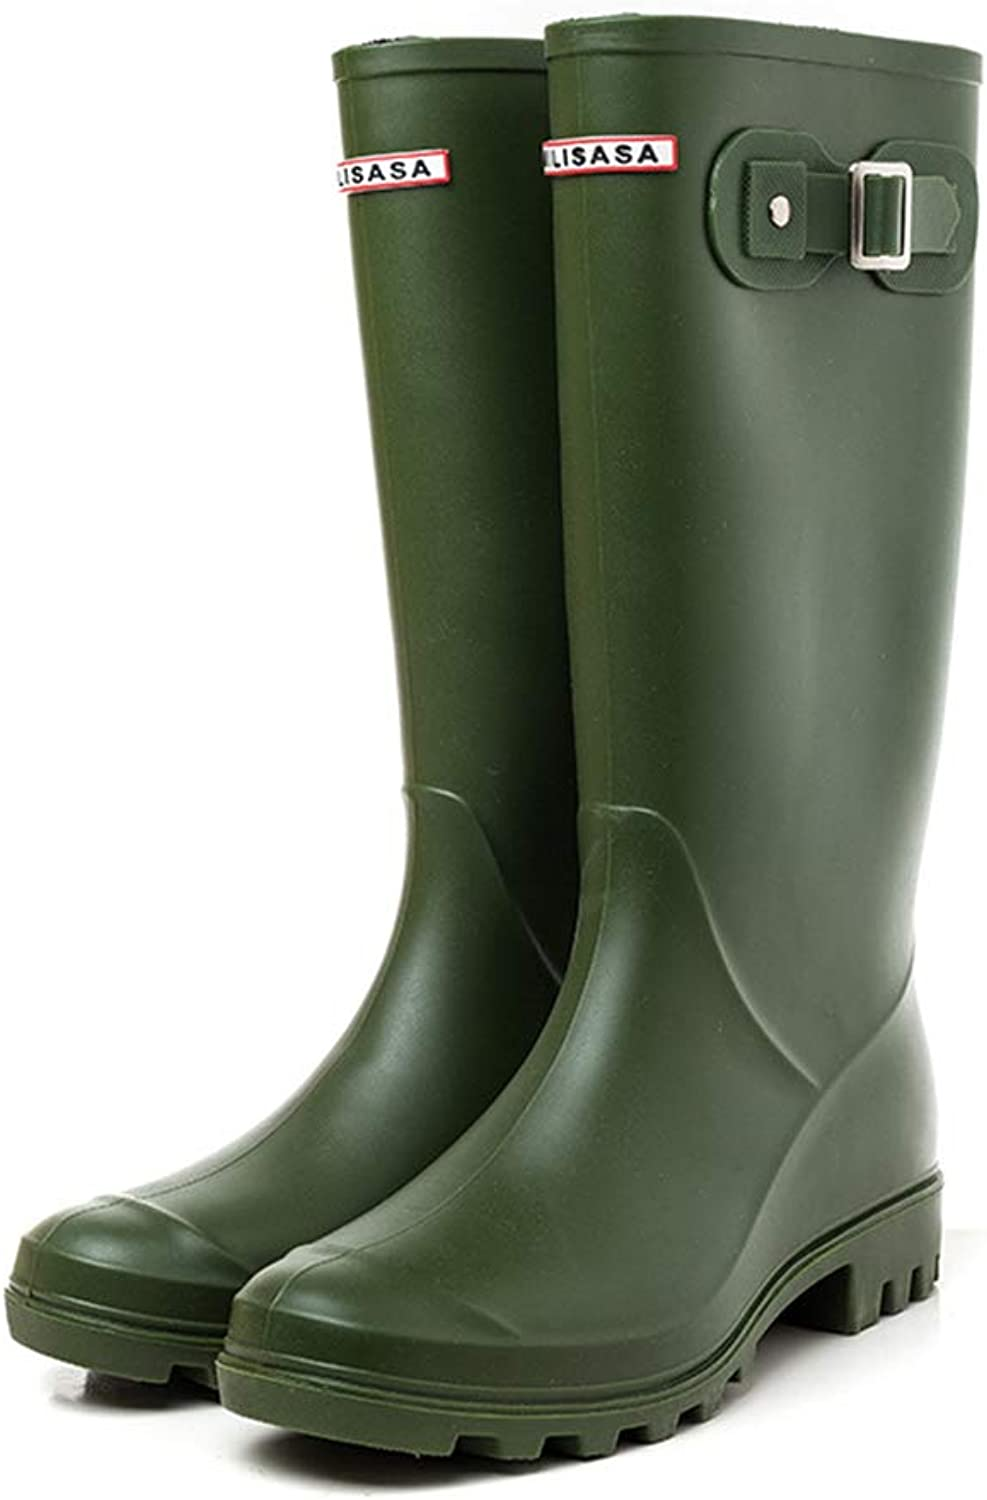 Excellent.c Rubber shoes Waterproof Boots Women's Tube rain Boots Water shoes